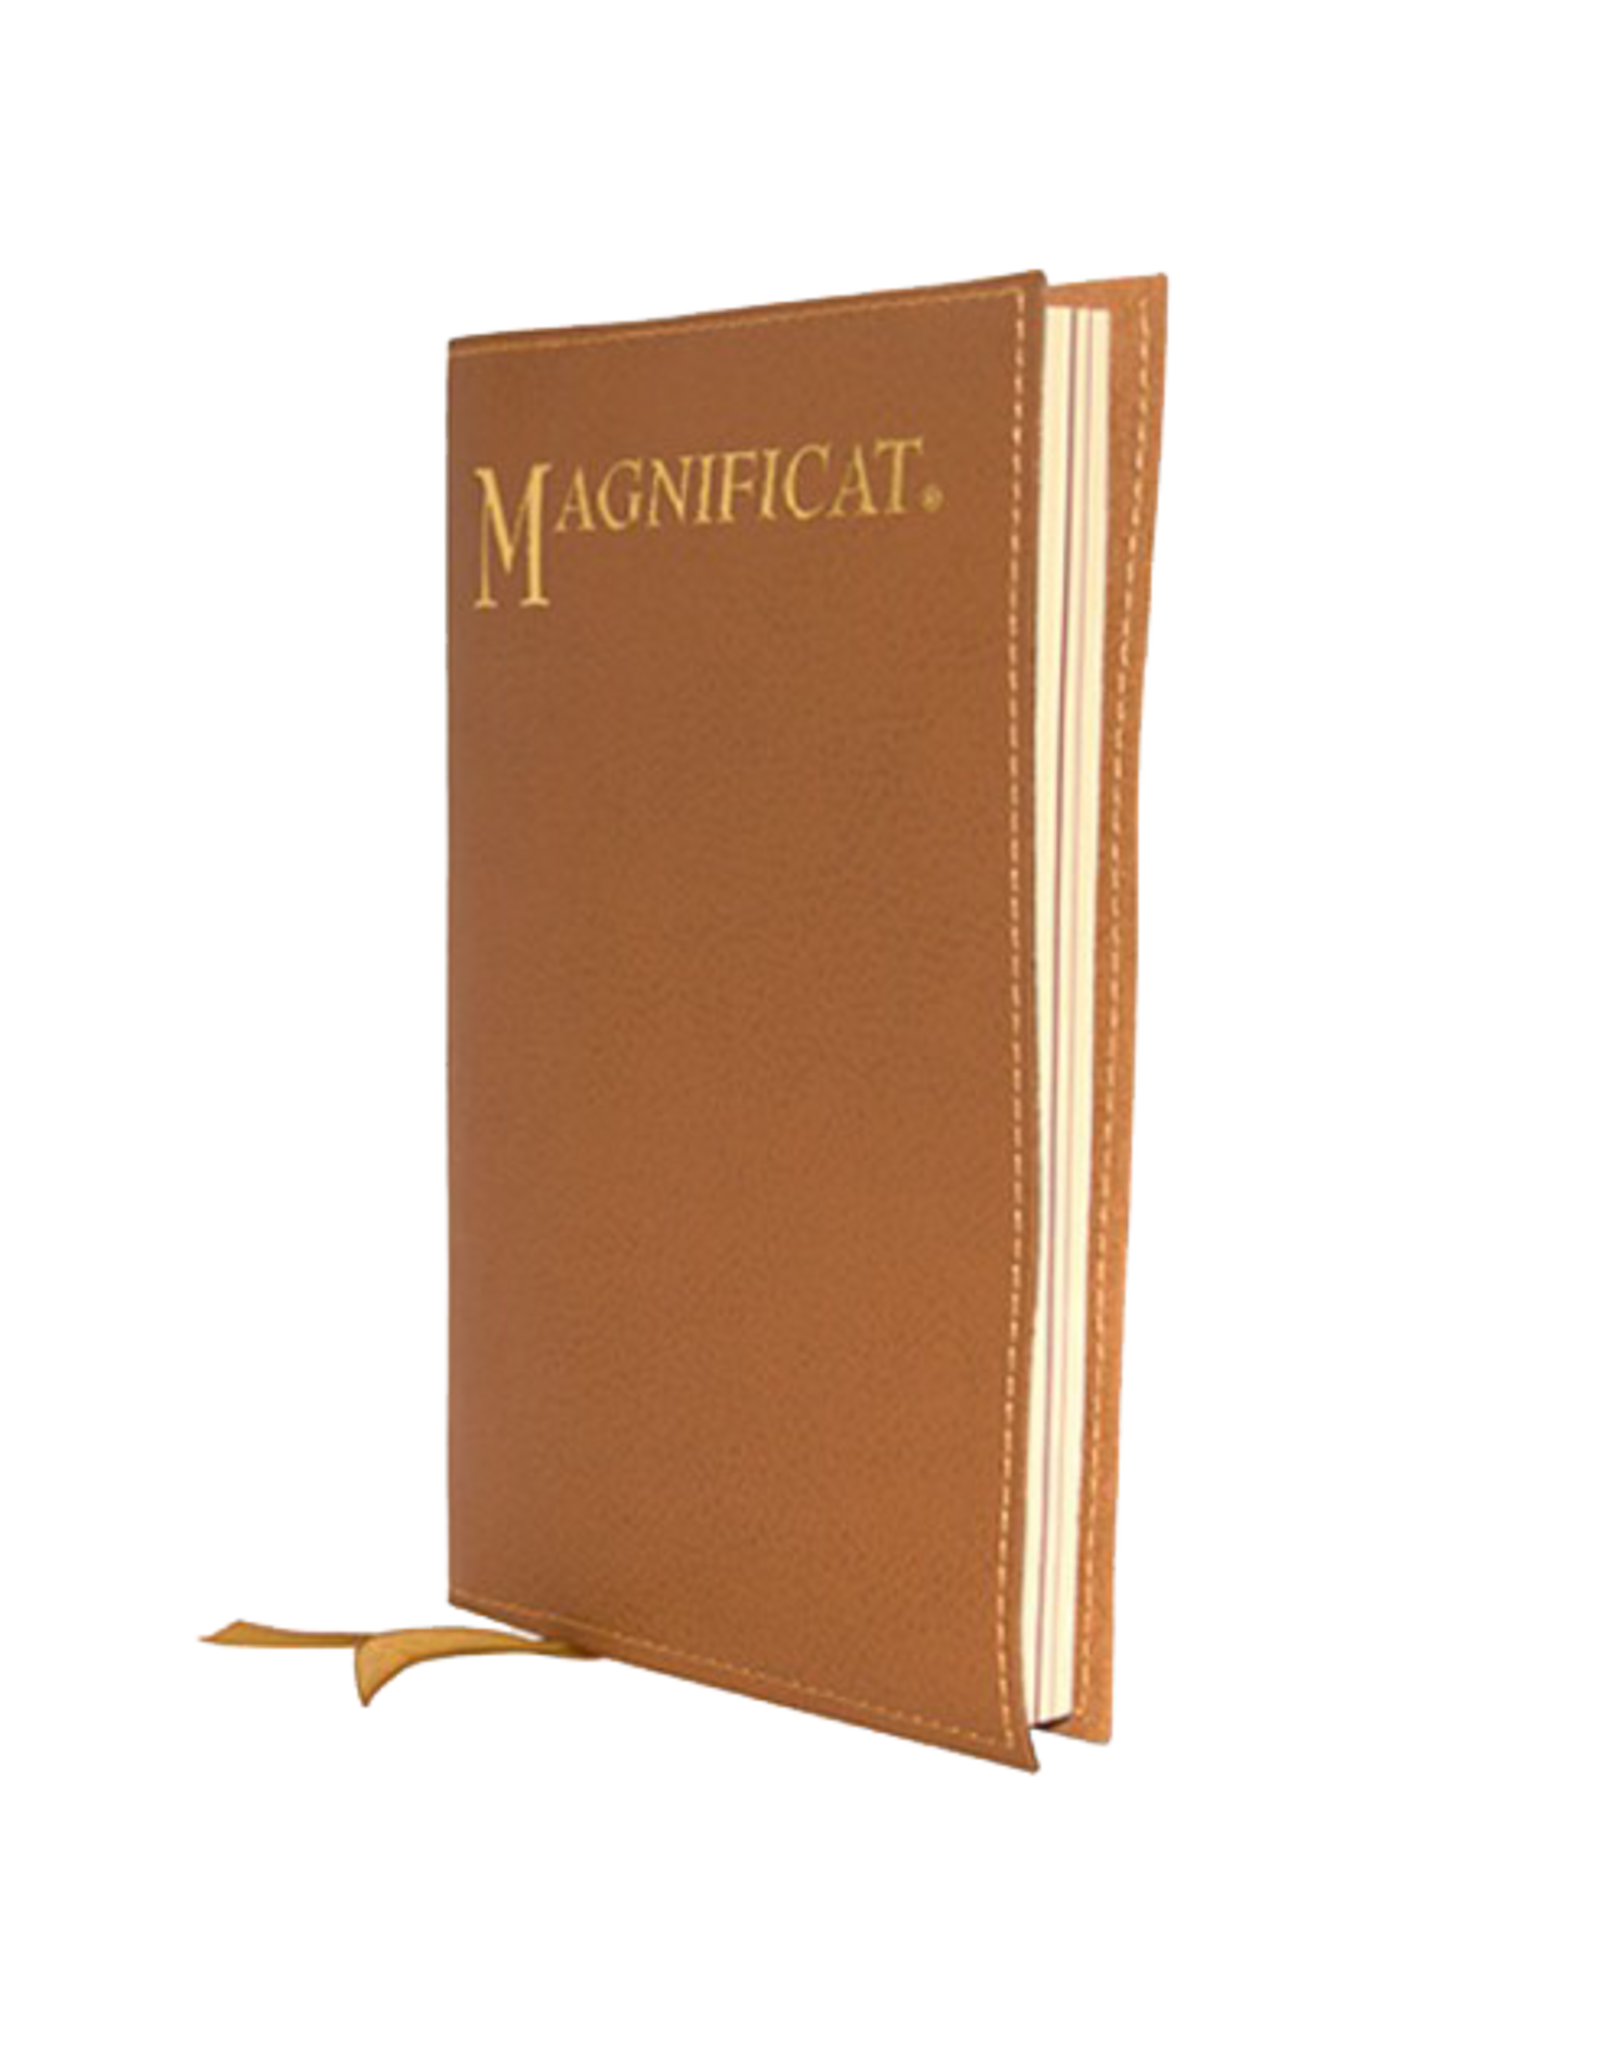 Tan Leatherette Cover for Magnificat CAN'T GET